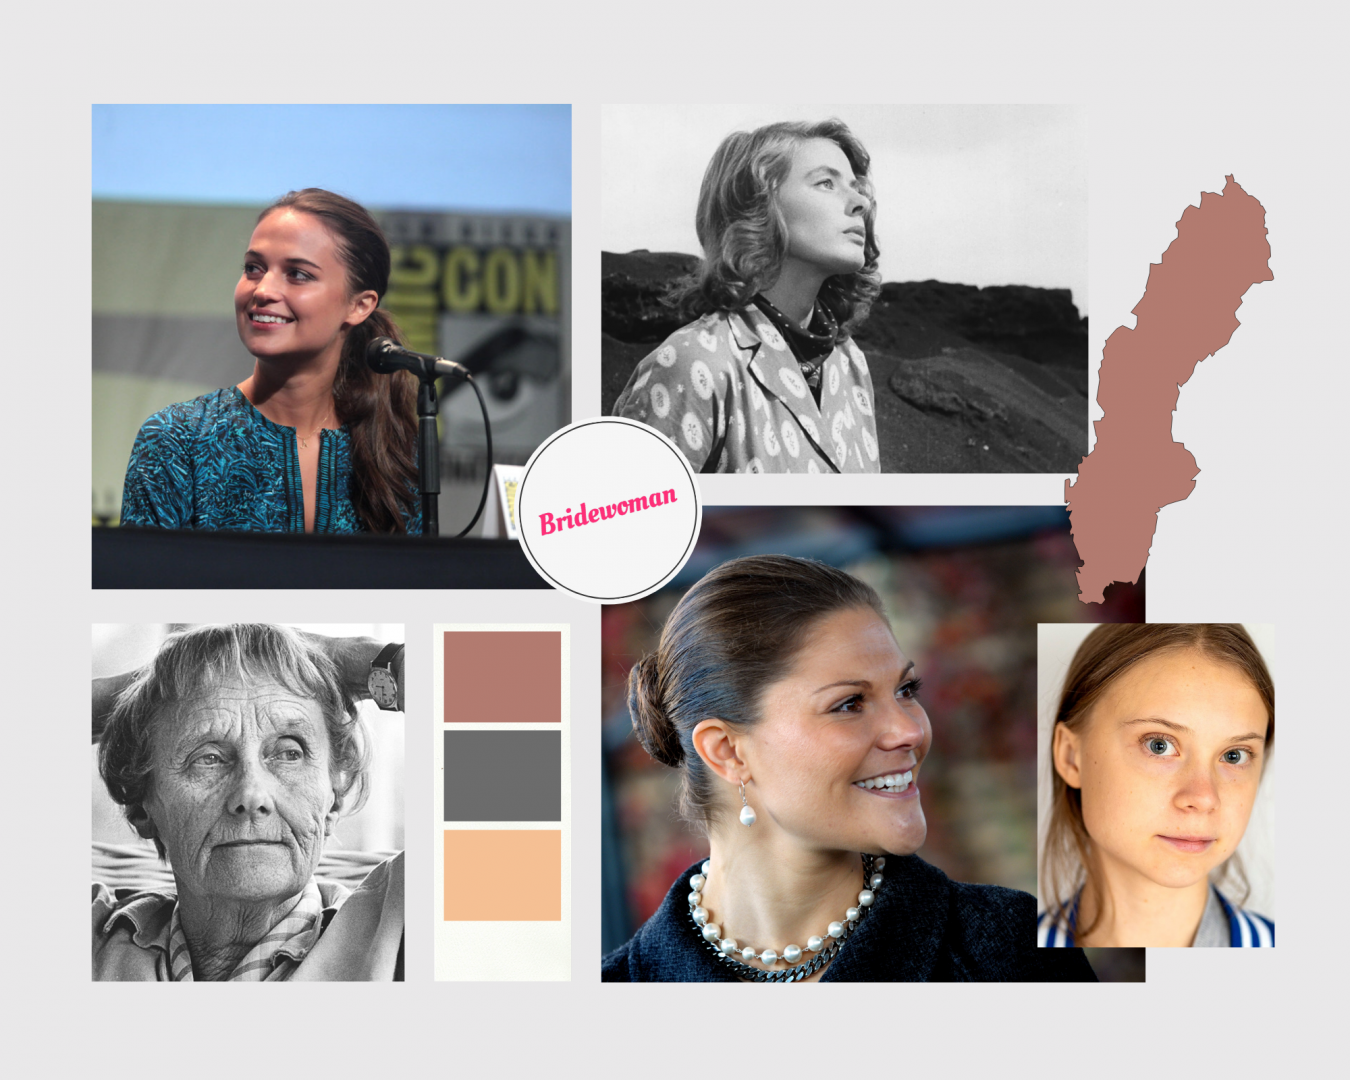 Top 5 famous women from Sweden